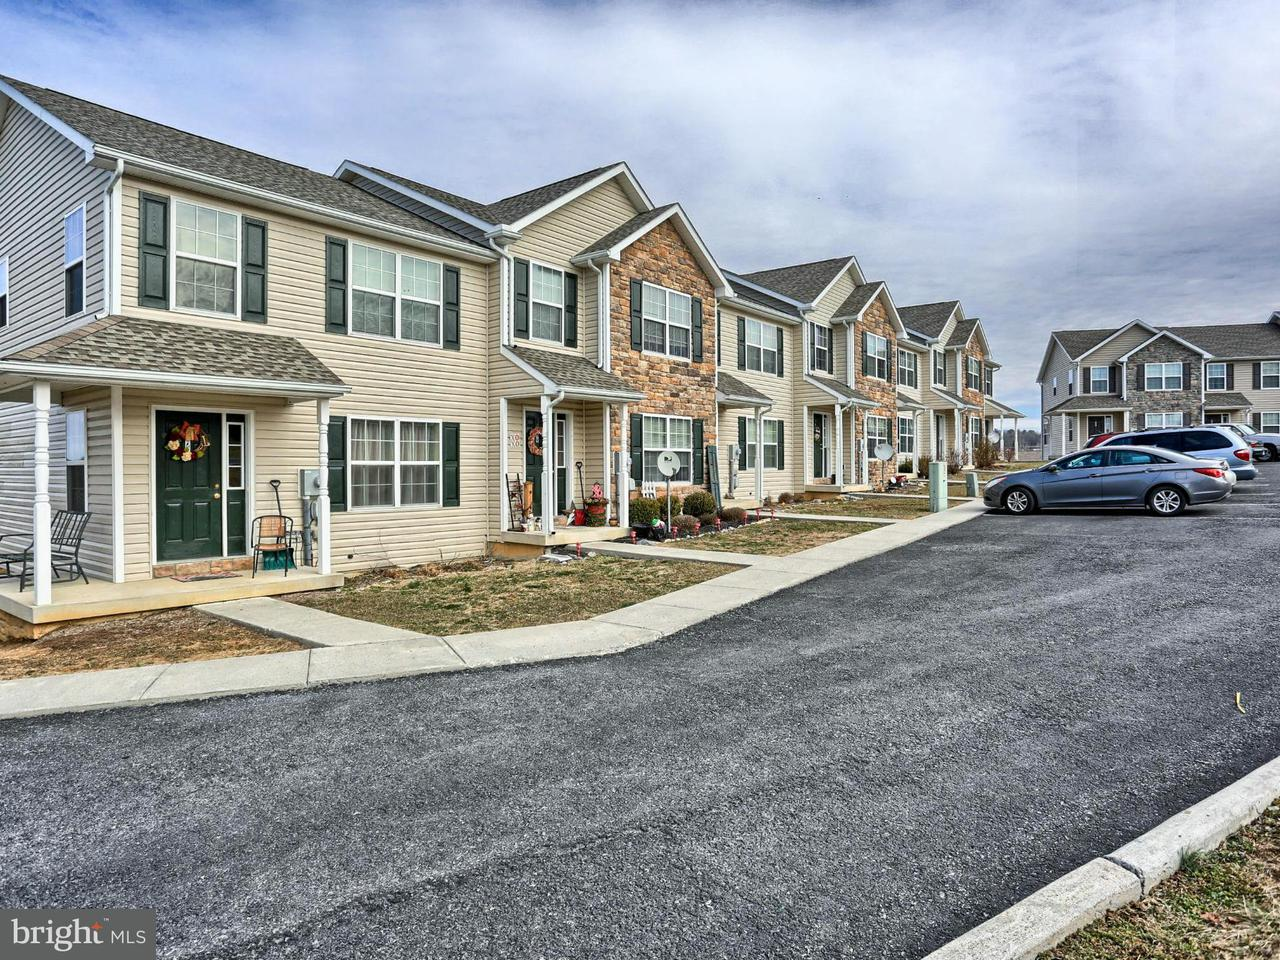 Multi-Family Home for Sale at 349 VIEWPOINT WAY 349 VIEWPOINT WAY Waynesboro, Pennsylvania 17268 United States